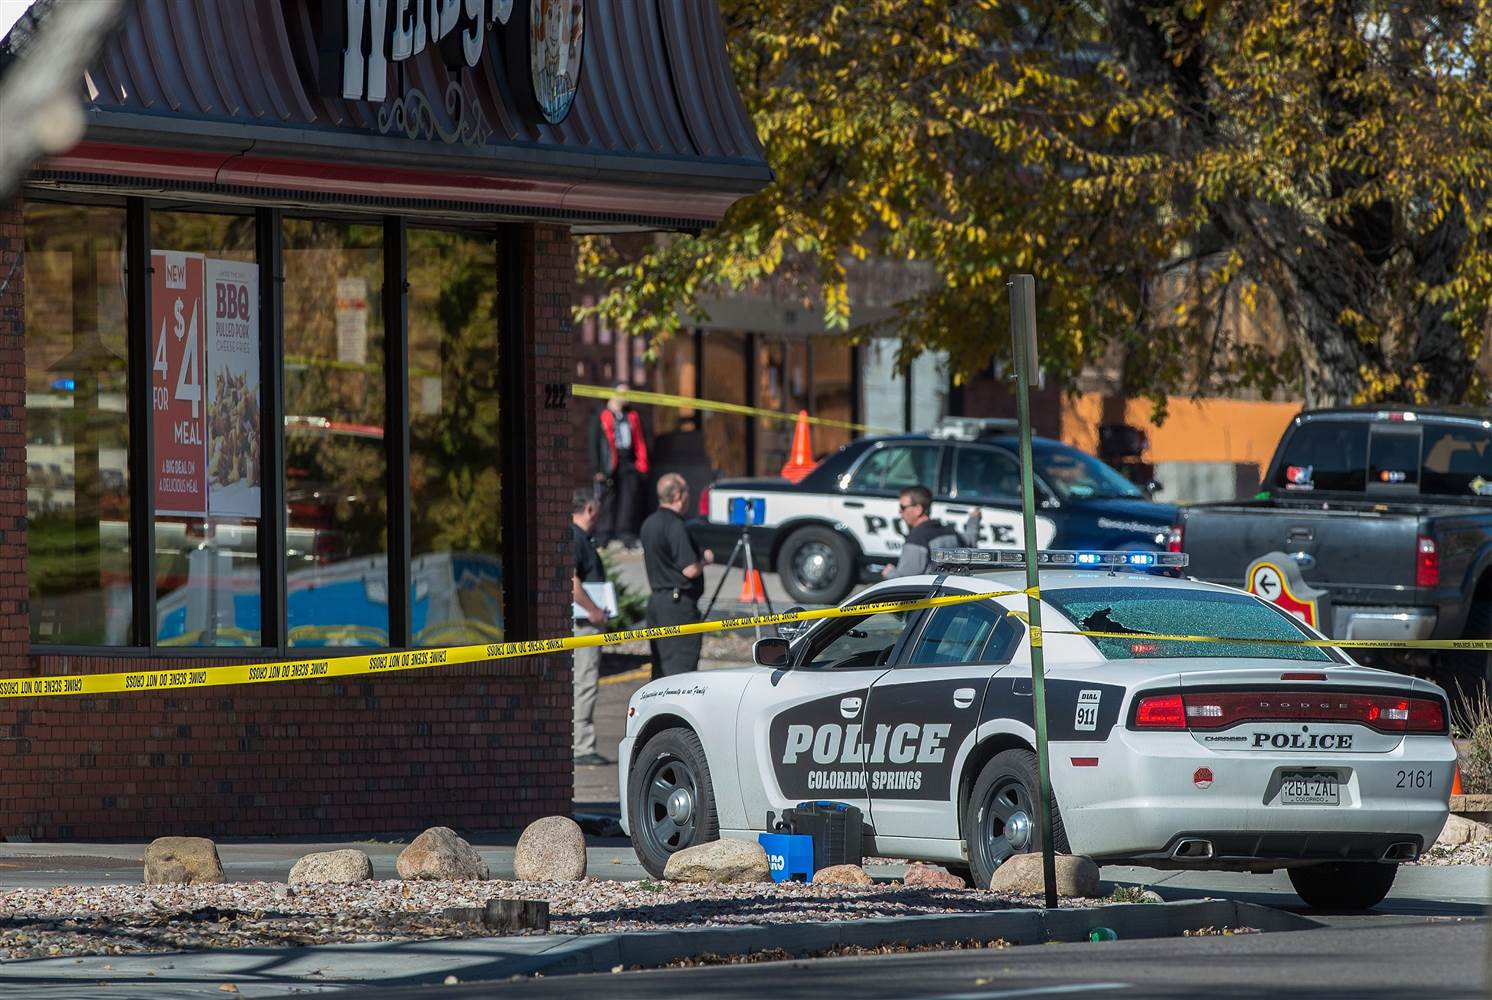 COLORADO -- On Halloween, at 8:45 AM, the Colorado Springs Police Department (CSPD) received a call for service regarding shots fired in the 200 block of North Prospect Street.